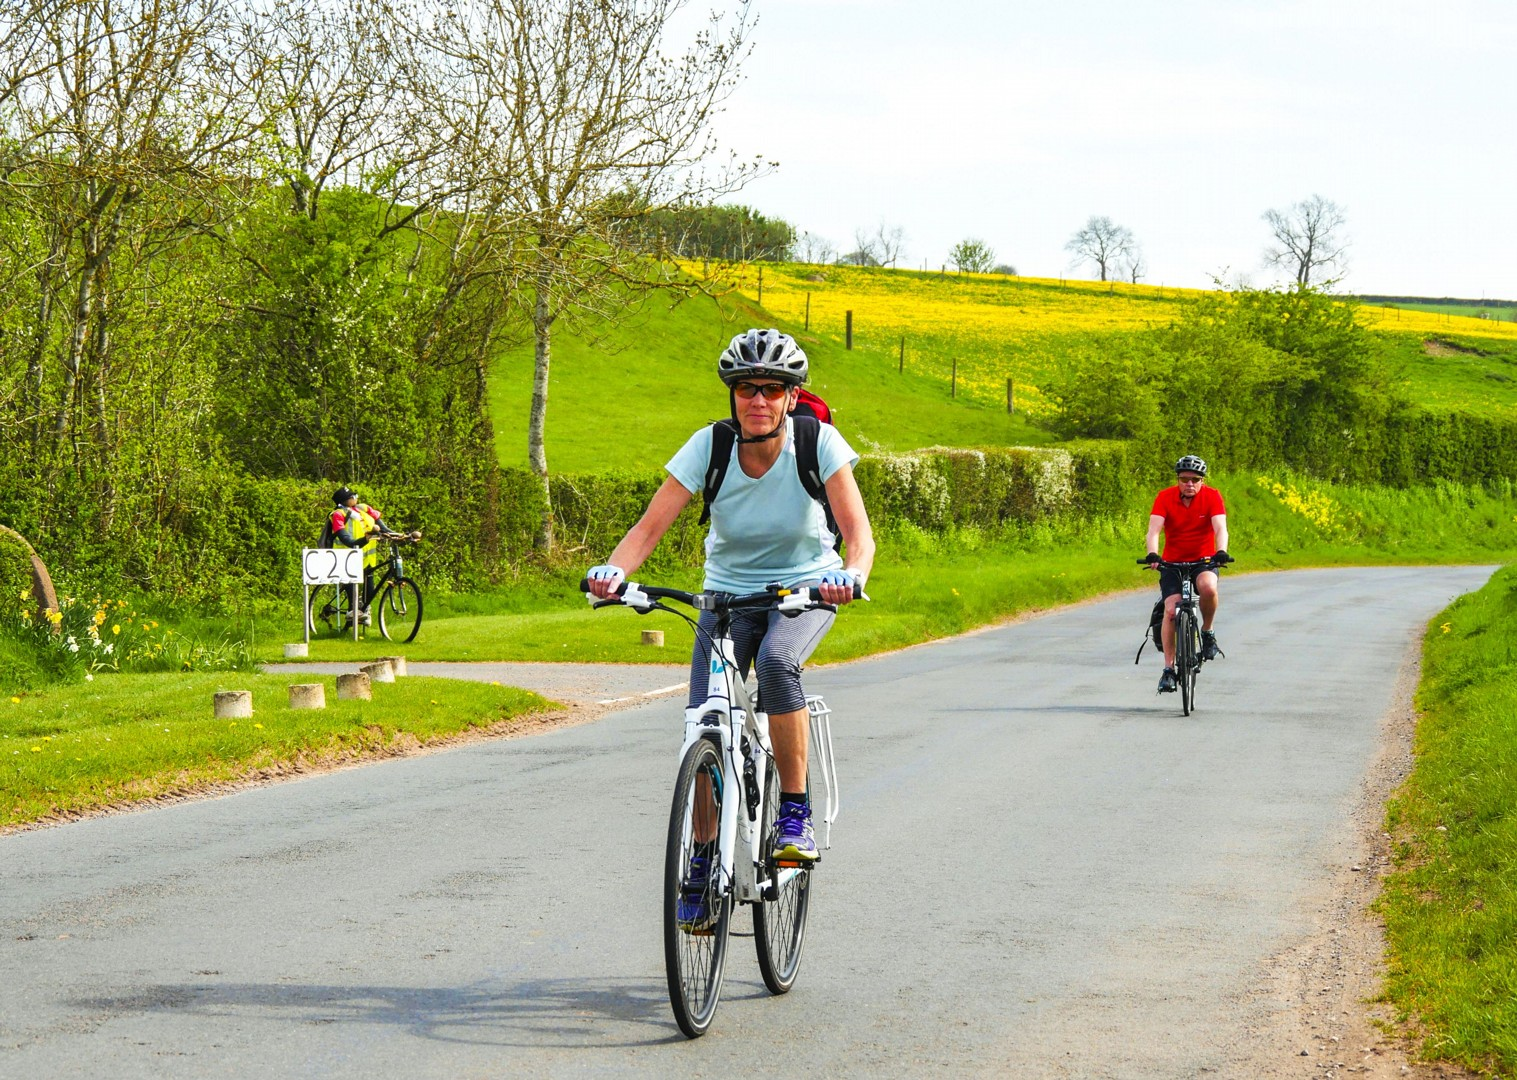 bike-friendly-accommodation-uk-coast-to-coast-route.jpg - UK - C2C - Coast to Coast 3 Days Cycling - Self-Guided Leisure Cycling Holiday - Leisure Cycling